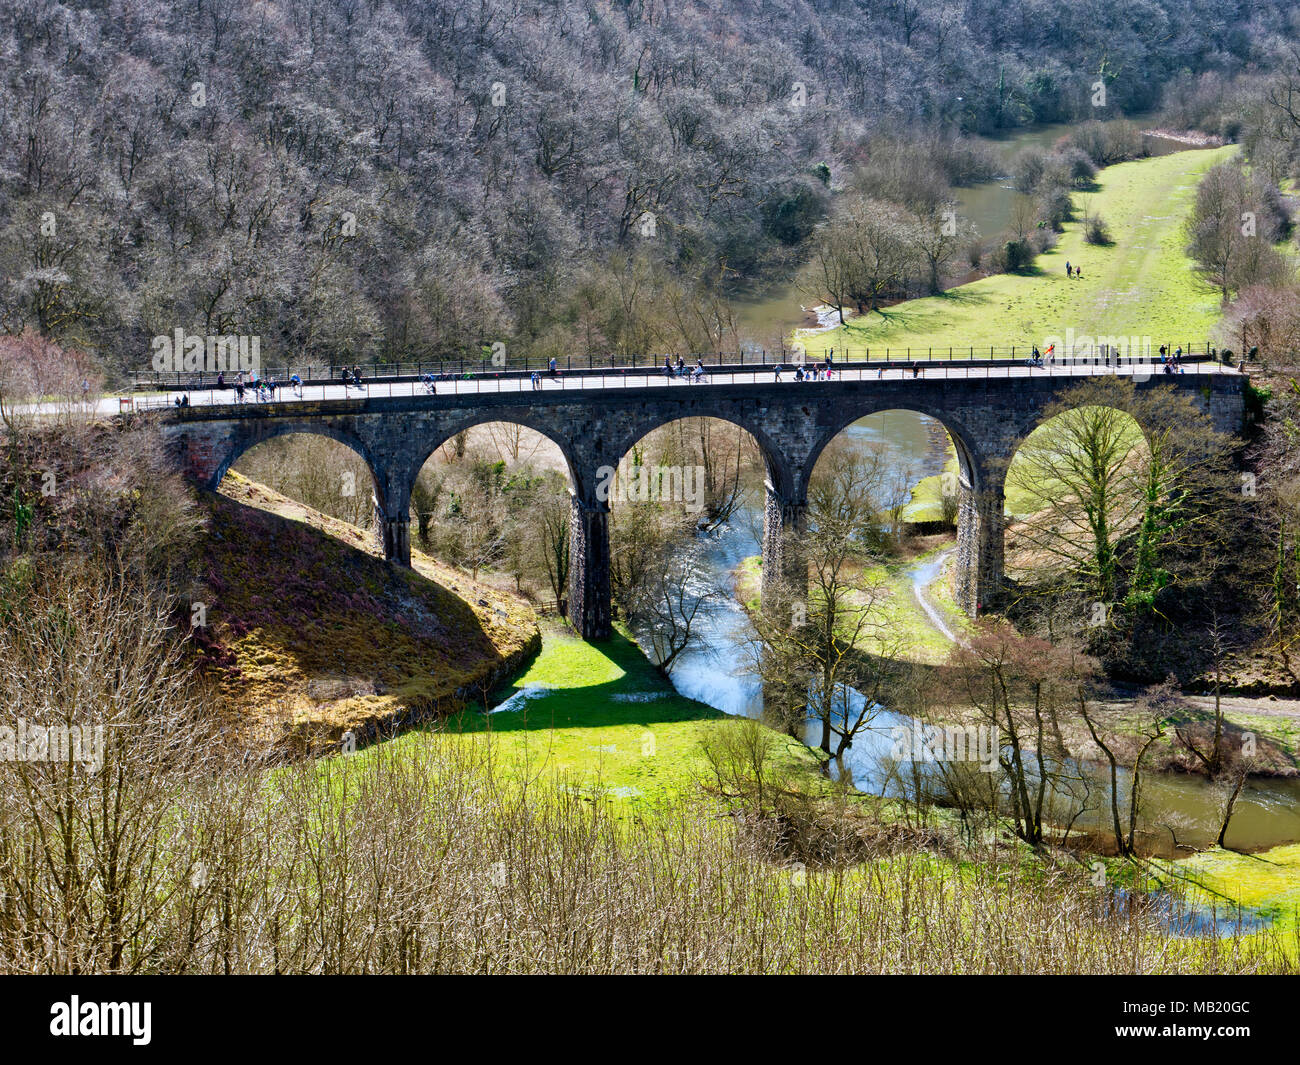 Peak District National Park. 5th Apr, 2018. UK Weather: visitors, walkers & cyclists enjoying the glorious sunshine on Thursday after the wet Easter Bank Holiday break along the Monsal Trail at Monsal Head & viaduct near Ashford on the Water & Bakewell in the Peak District National Park Credit: Doug Blane/Alamy Live News Stock Photo